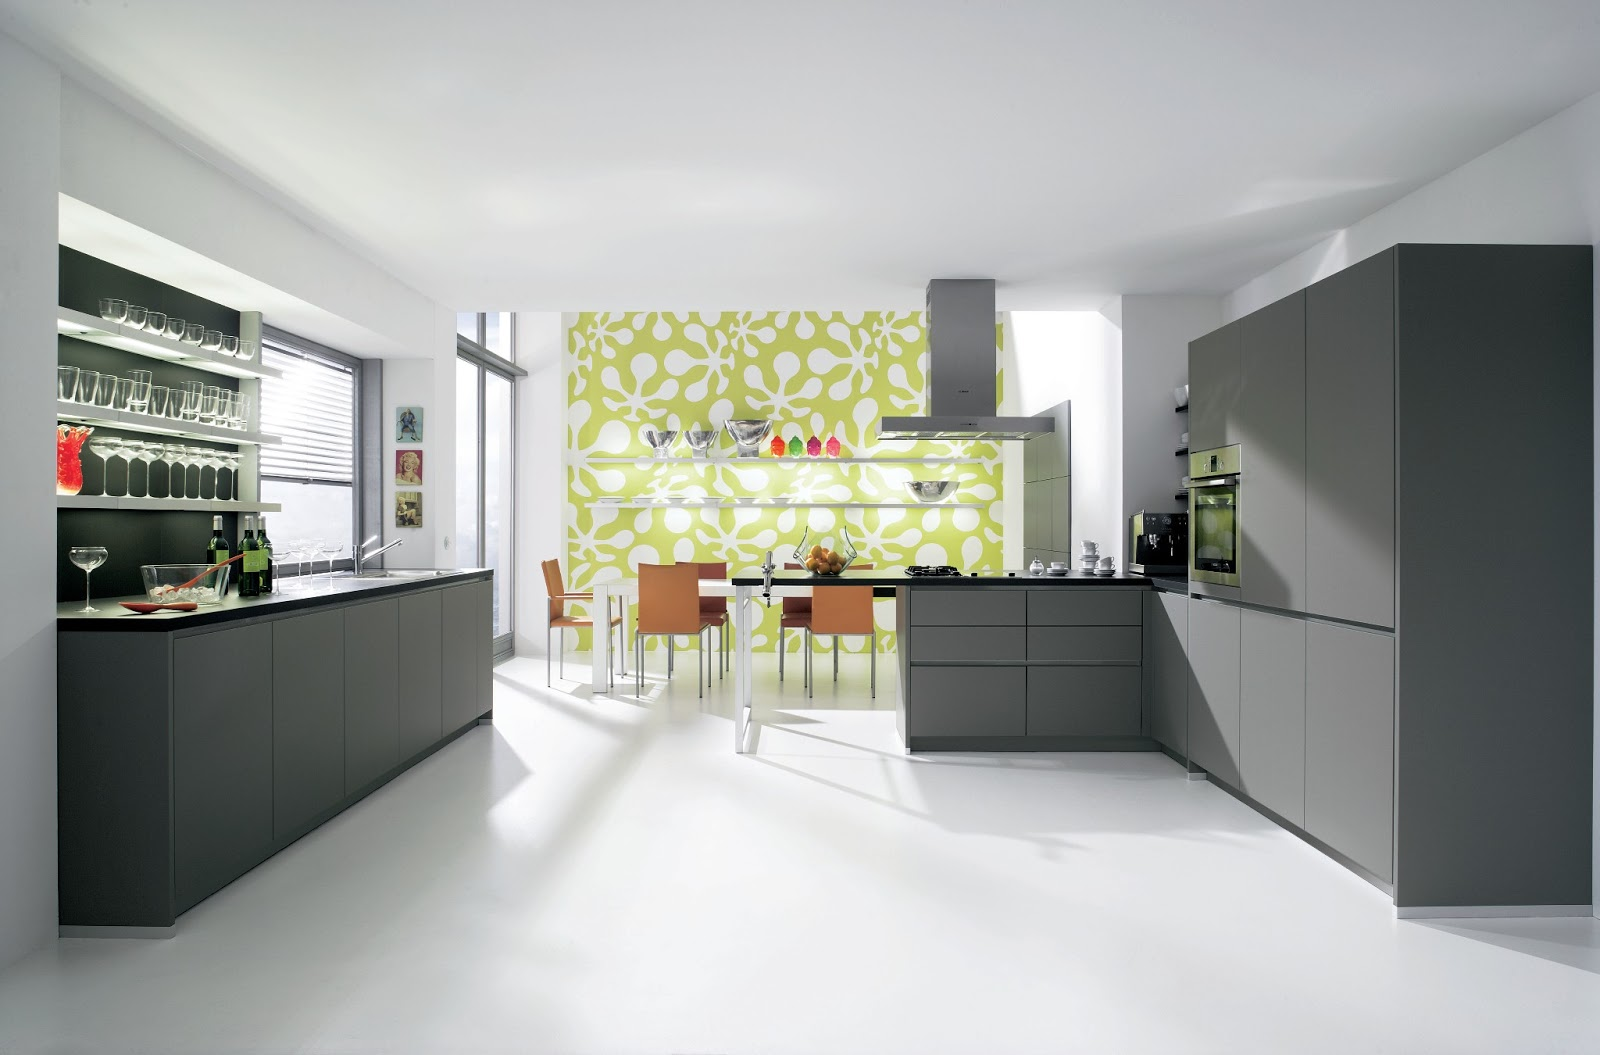 Cuisine design laqu e mate gris anthracite for Cuisine grise design